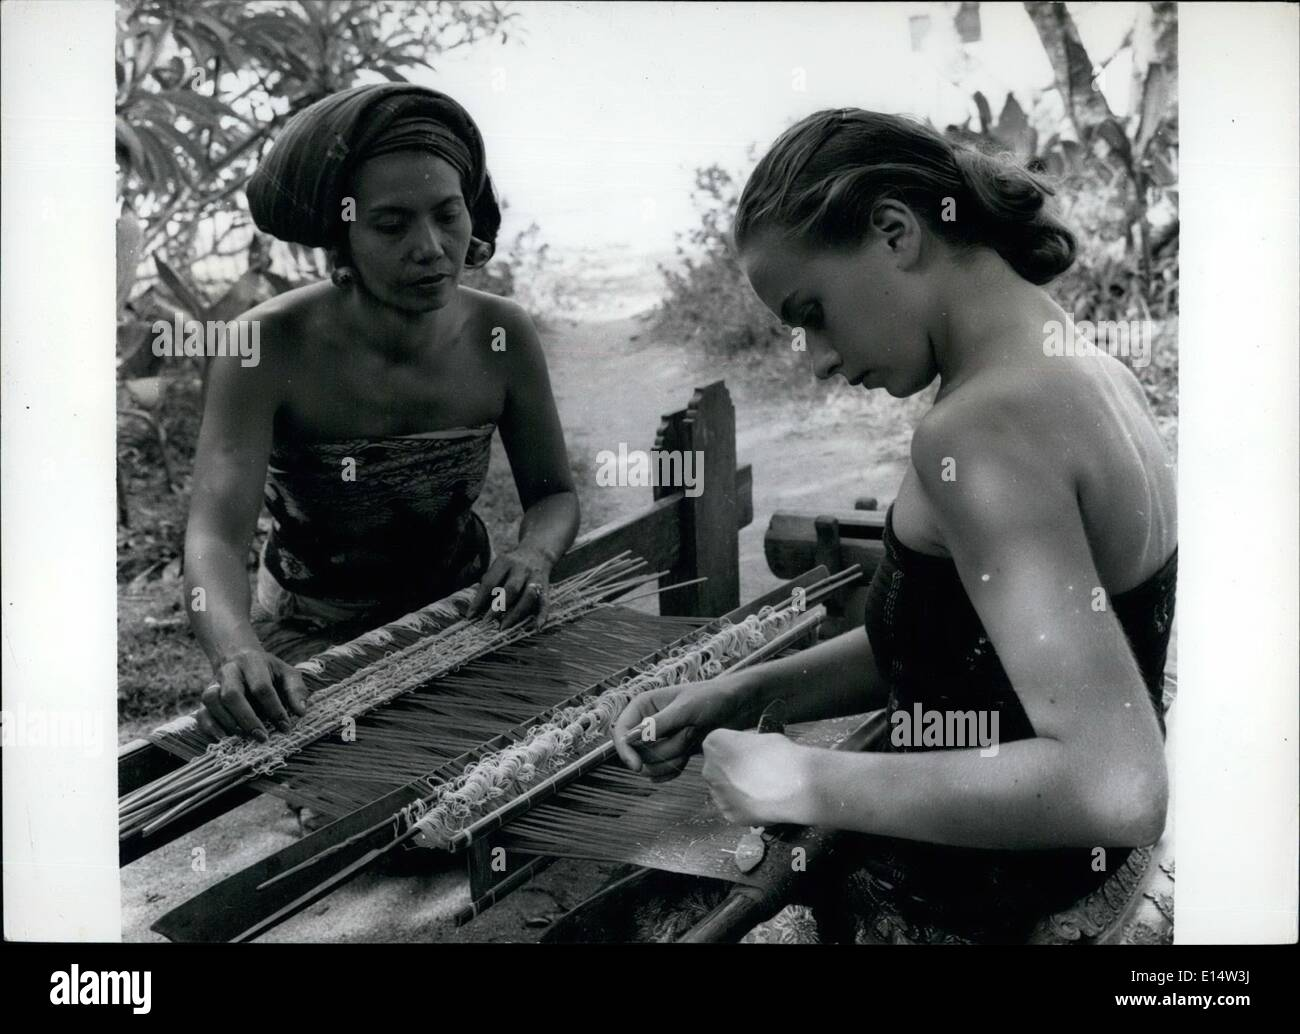 Apr. 18, 2012 - Weaving silk cloth is one of the handicrafts for which the island of Bali is famous. - Stock Image